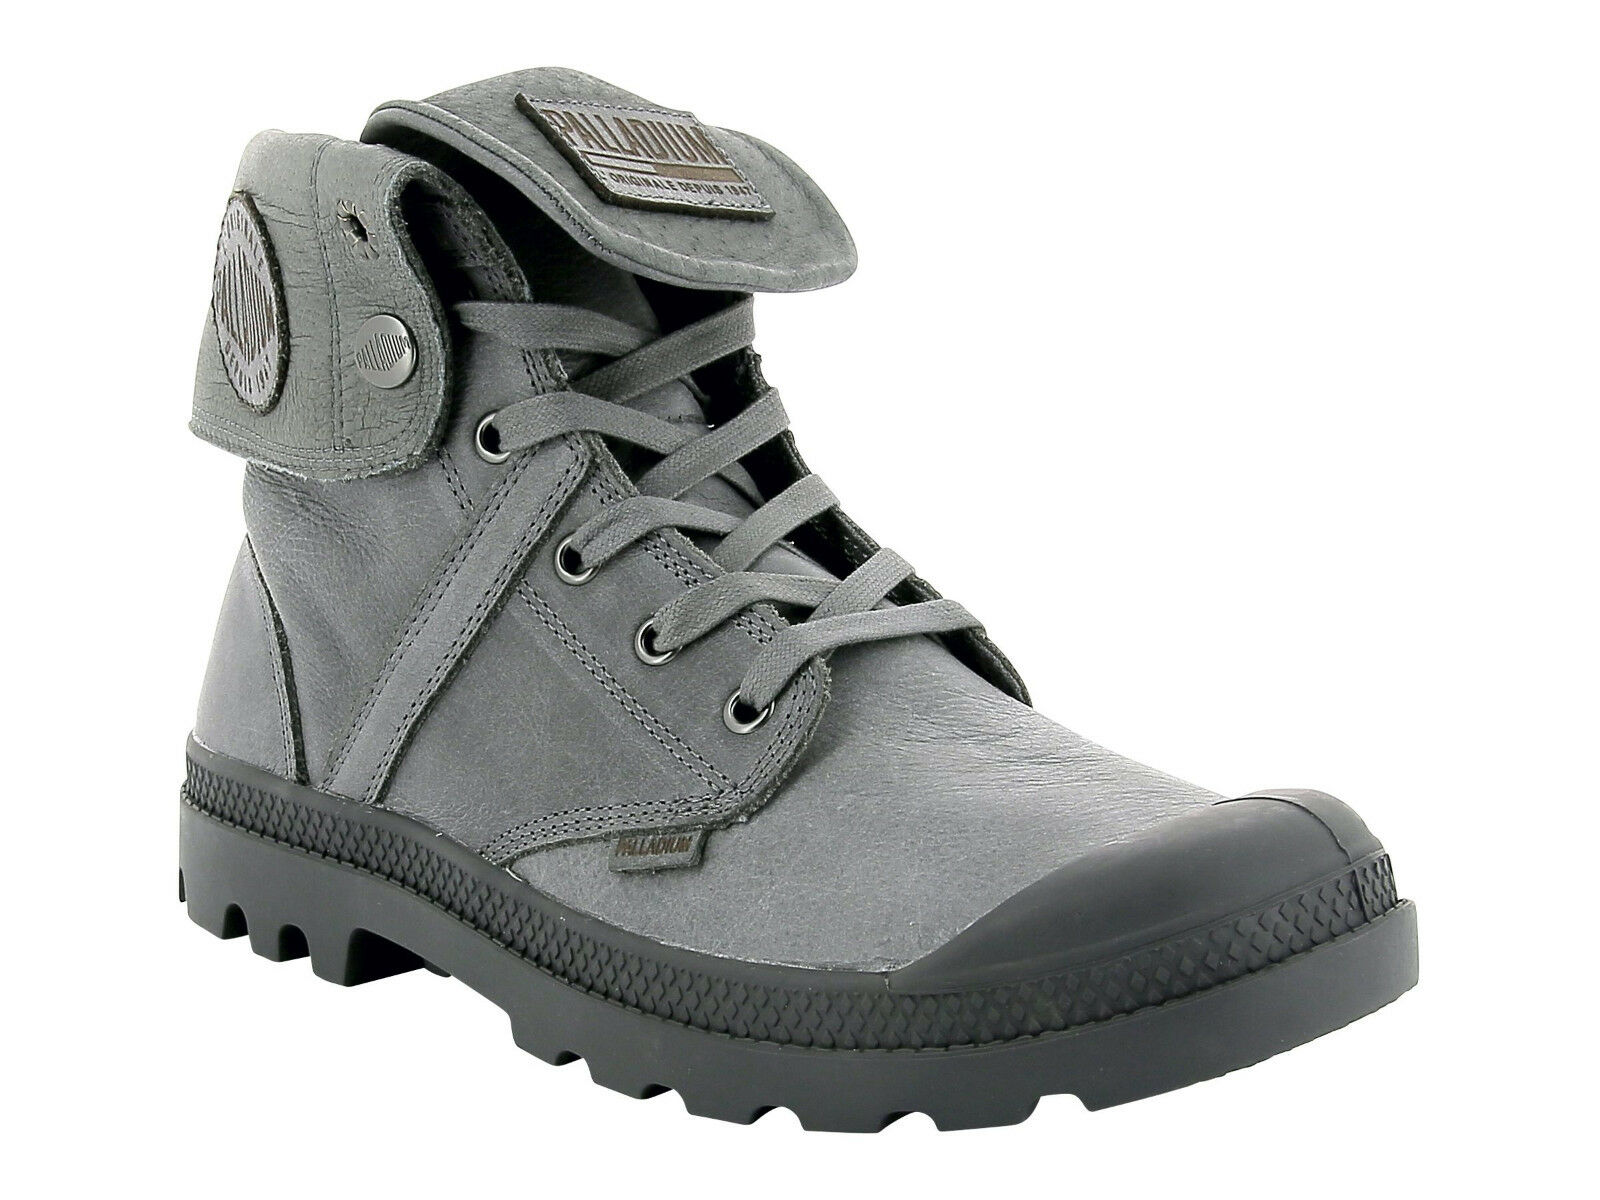 Palladium Pallabrouse Baggy l2 Boot Grey